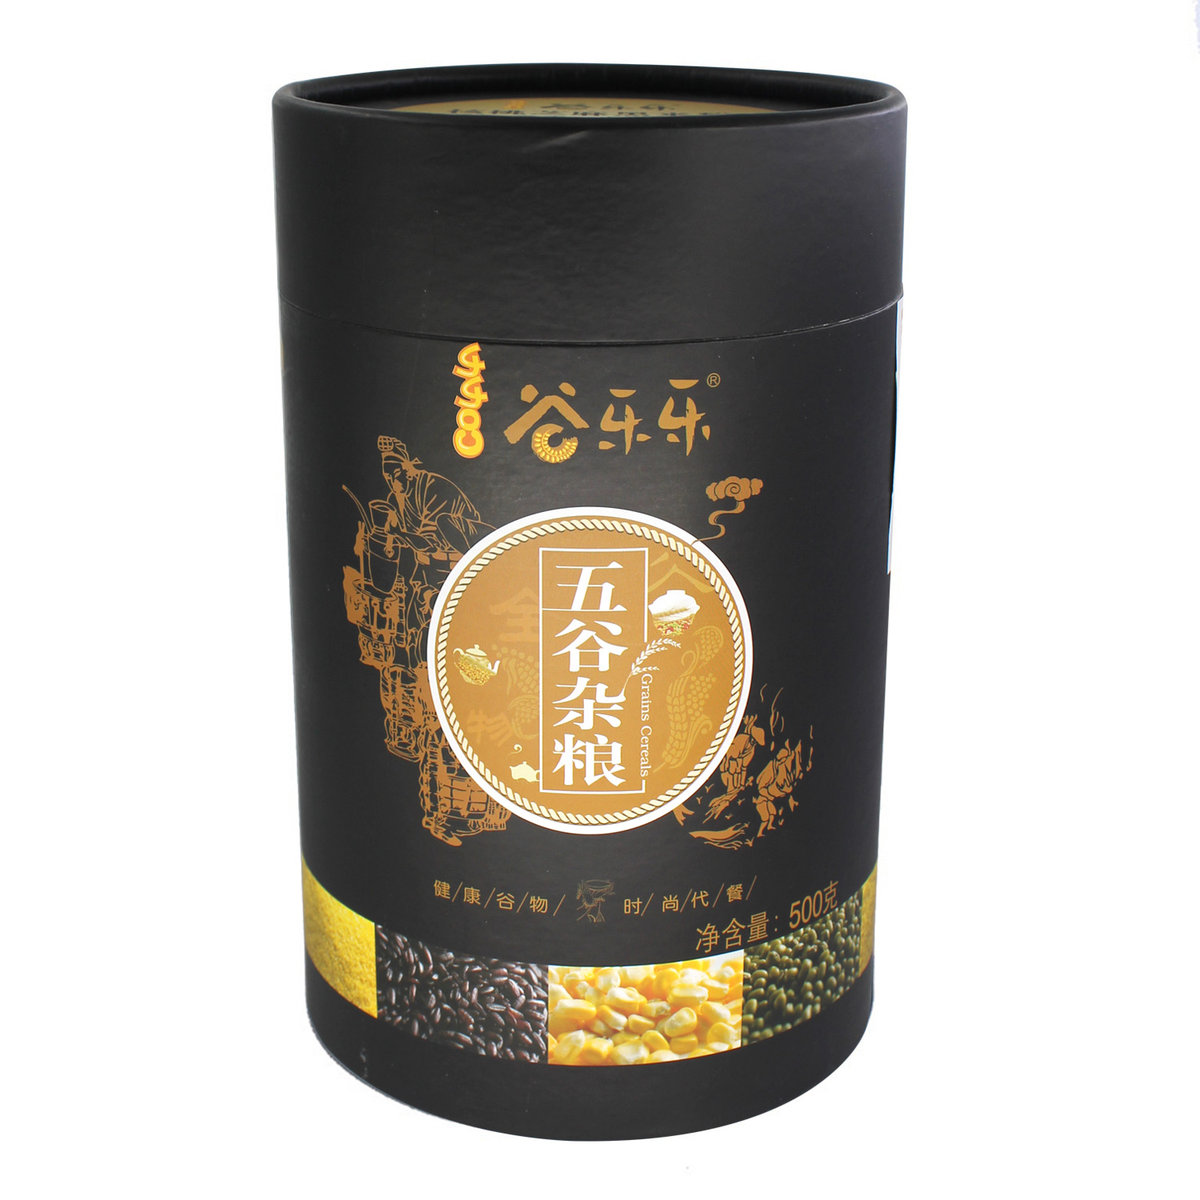 Whole Grain Black Sesame Cereal Powder